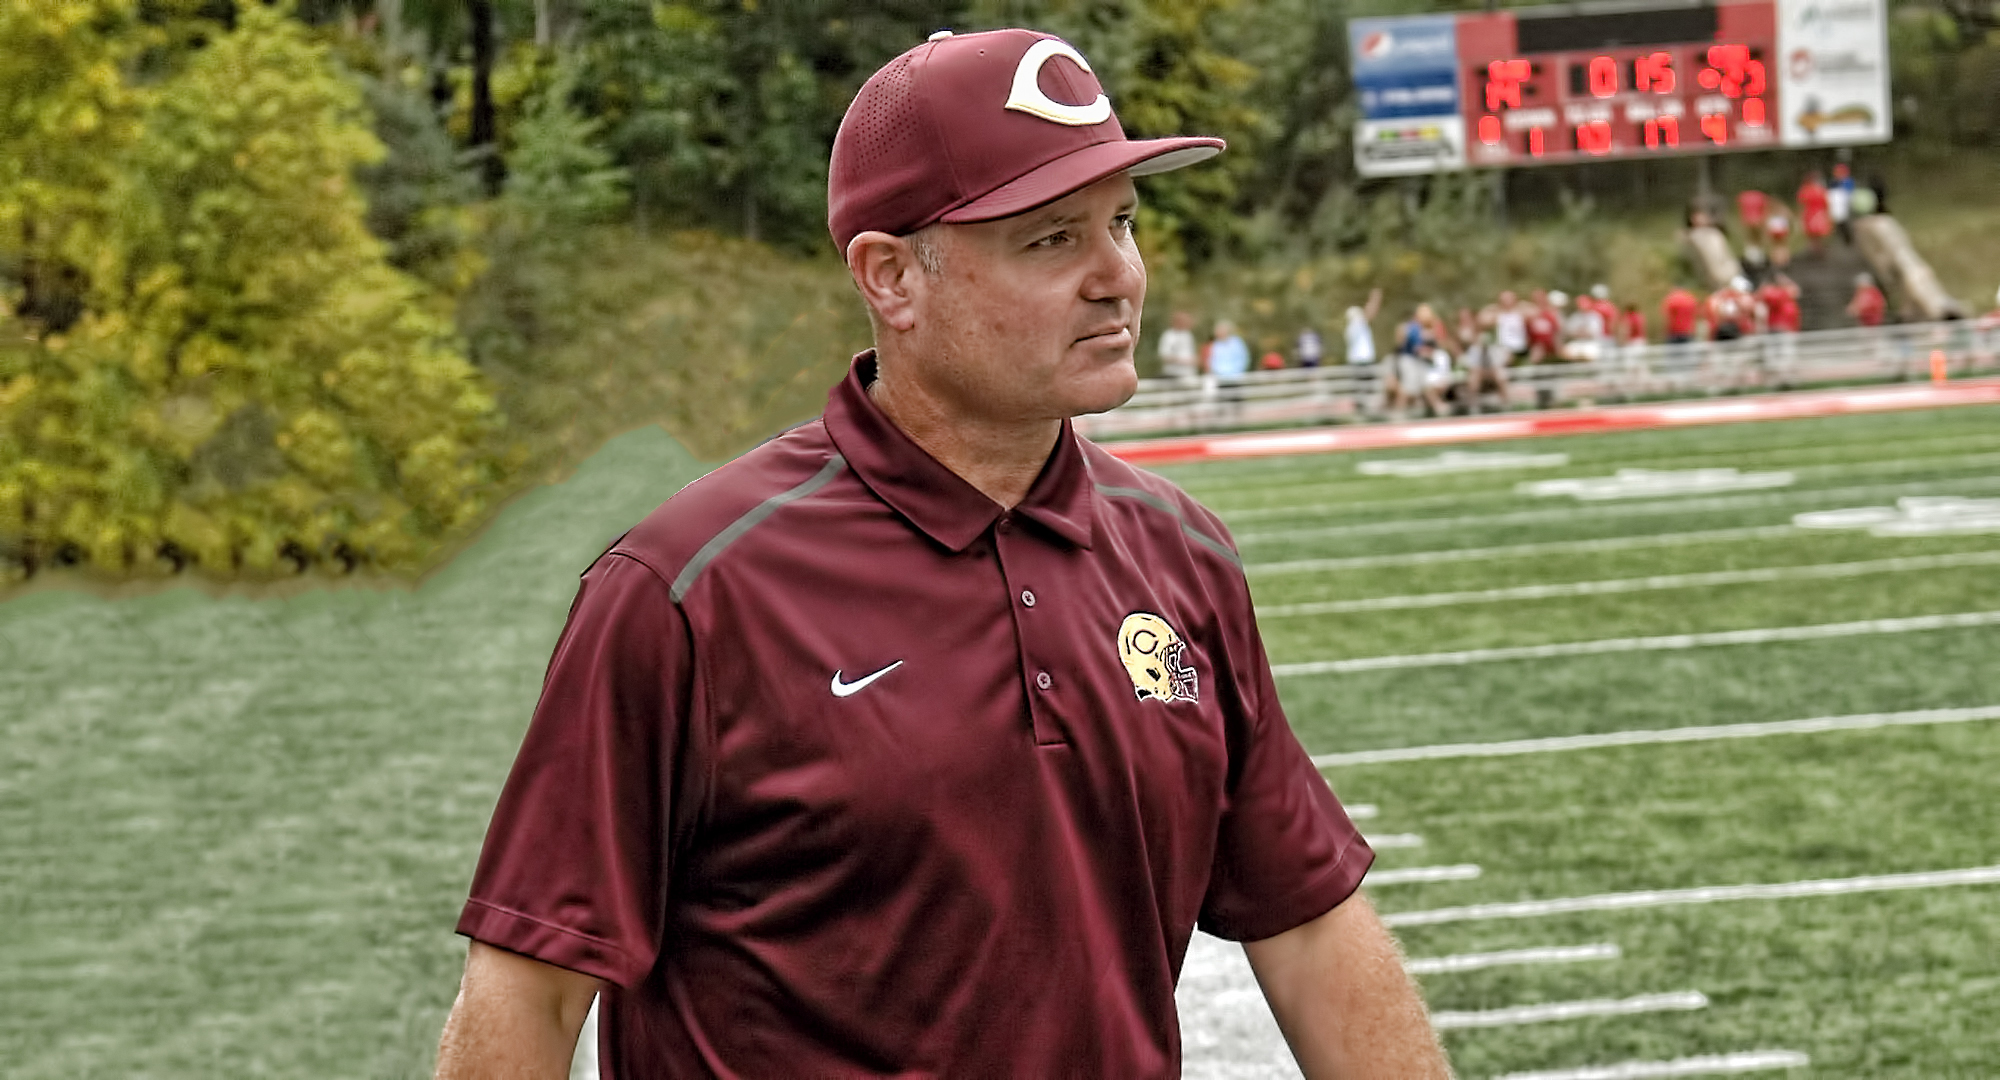 Head coach Terry Horan announced the hiring of four new assistant coaches to the Cobber staff.